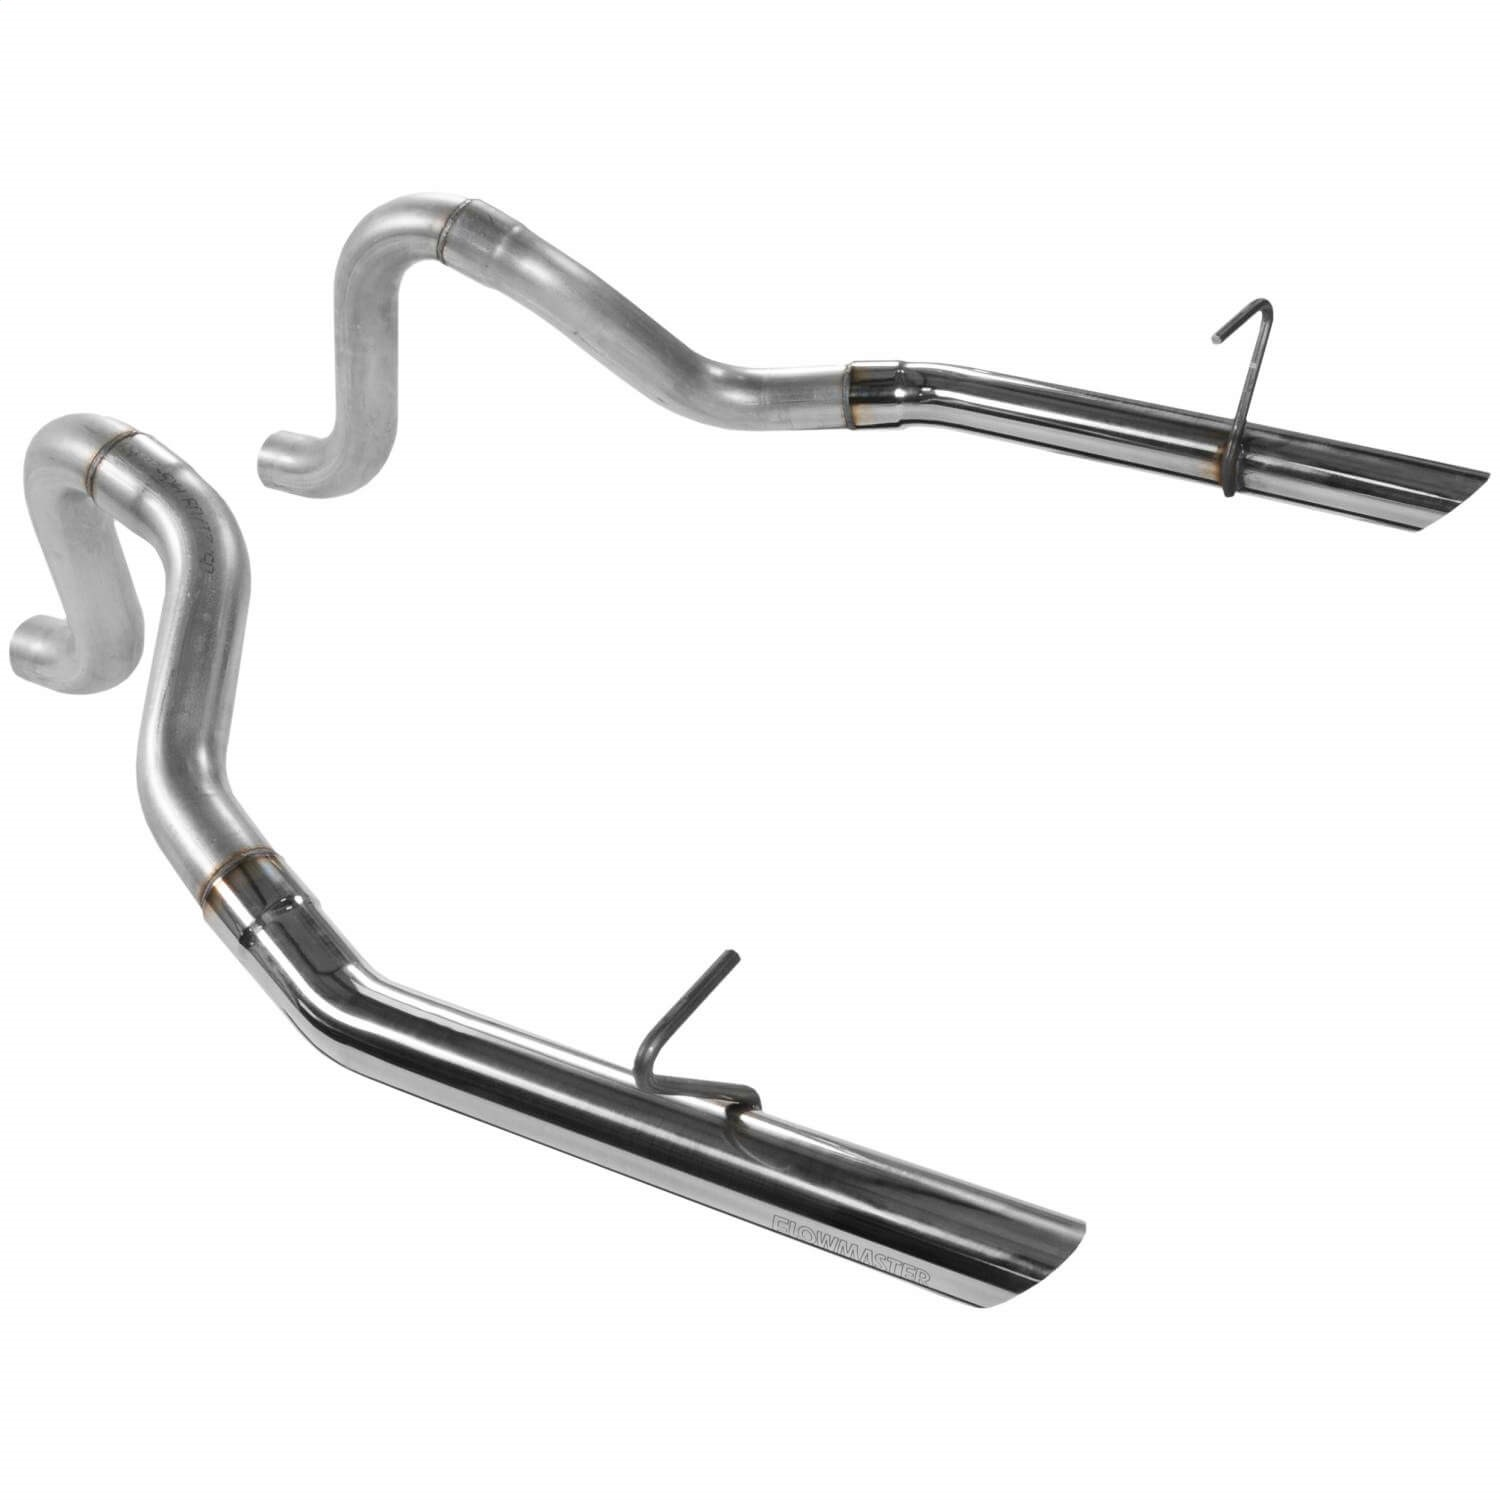 Flowmaster 15814 Tailpipe Set Fits 86-93 Mustang